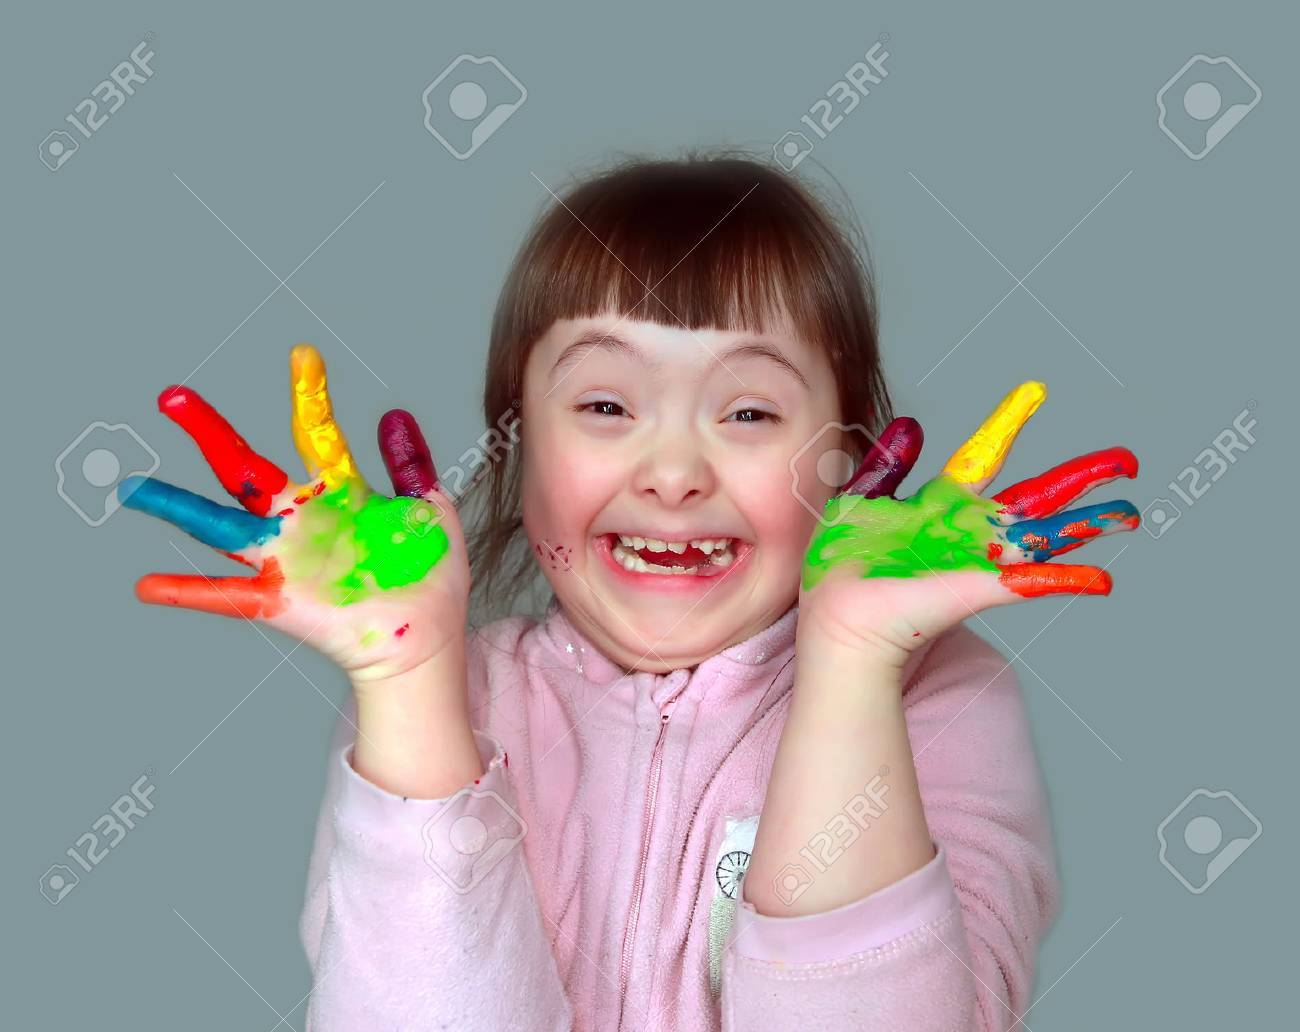 Cute little girl with painted hands. Isolated on grey background. Standard-Bild - 36953609